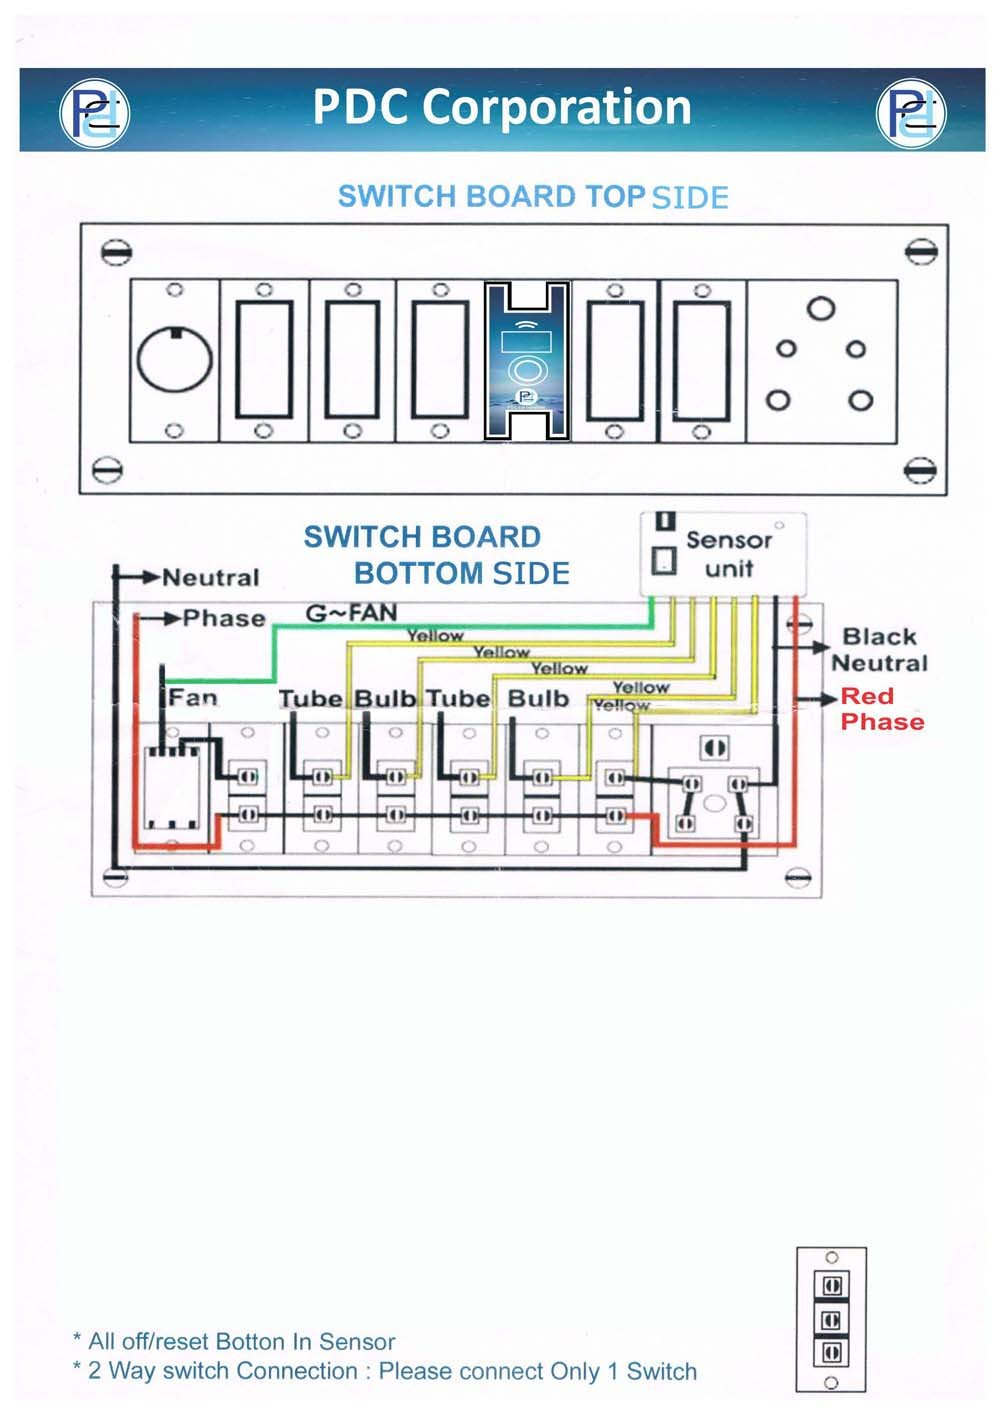 Pdc Wireless Remote Control 7 Channel On Off Modular Switch 5 2 Way Working Lights And Fan Systems Home Improvement